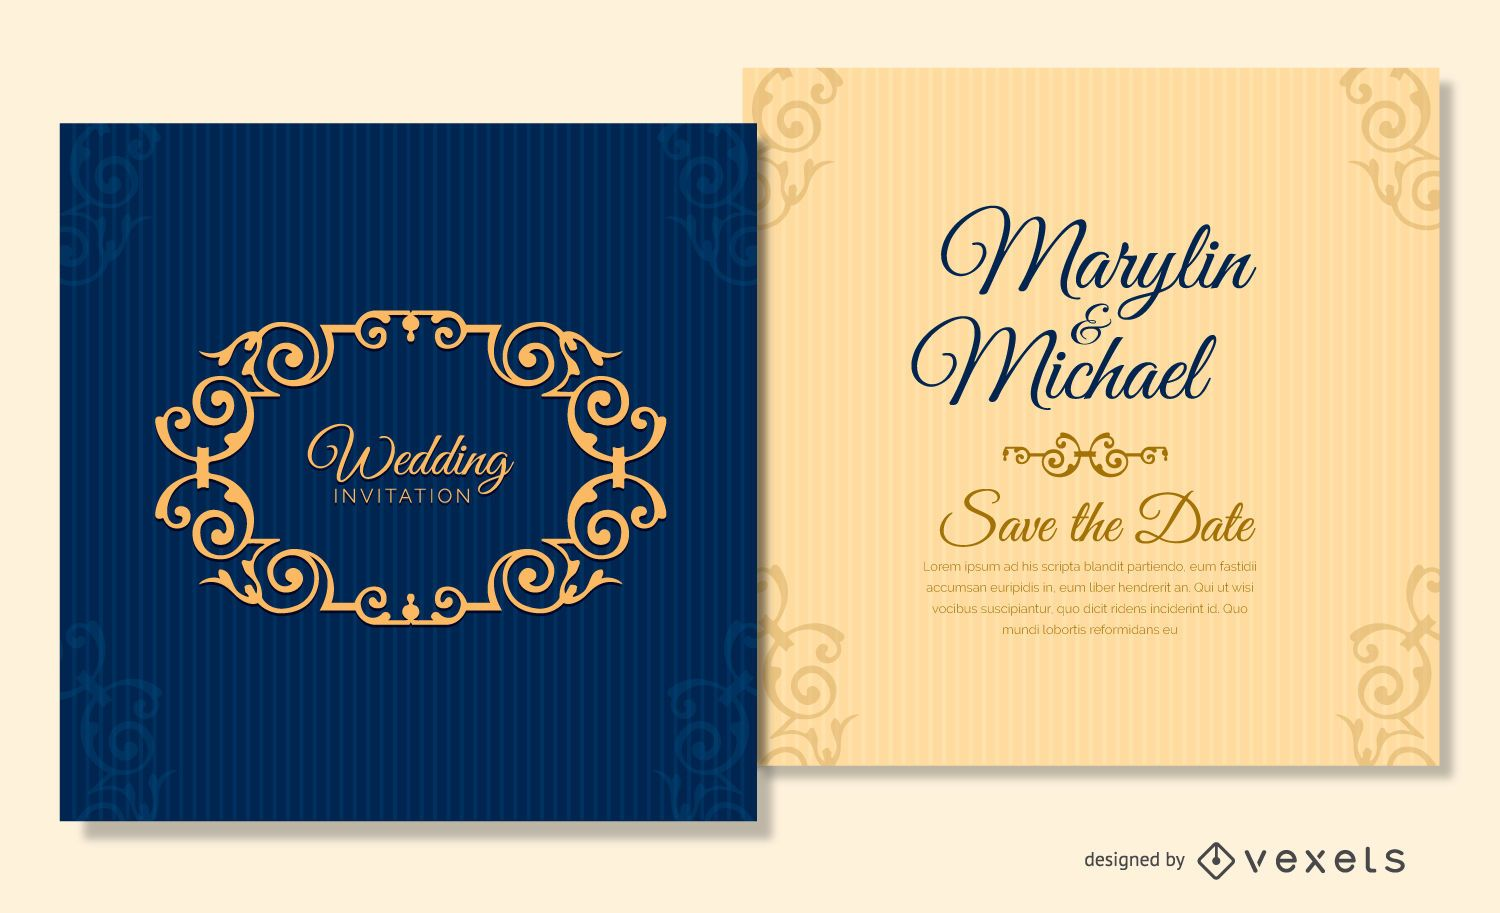 469 wedding vectors images ai png svg free download